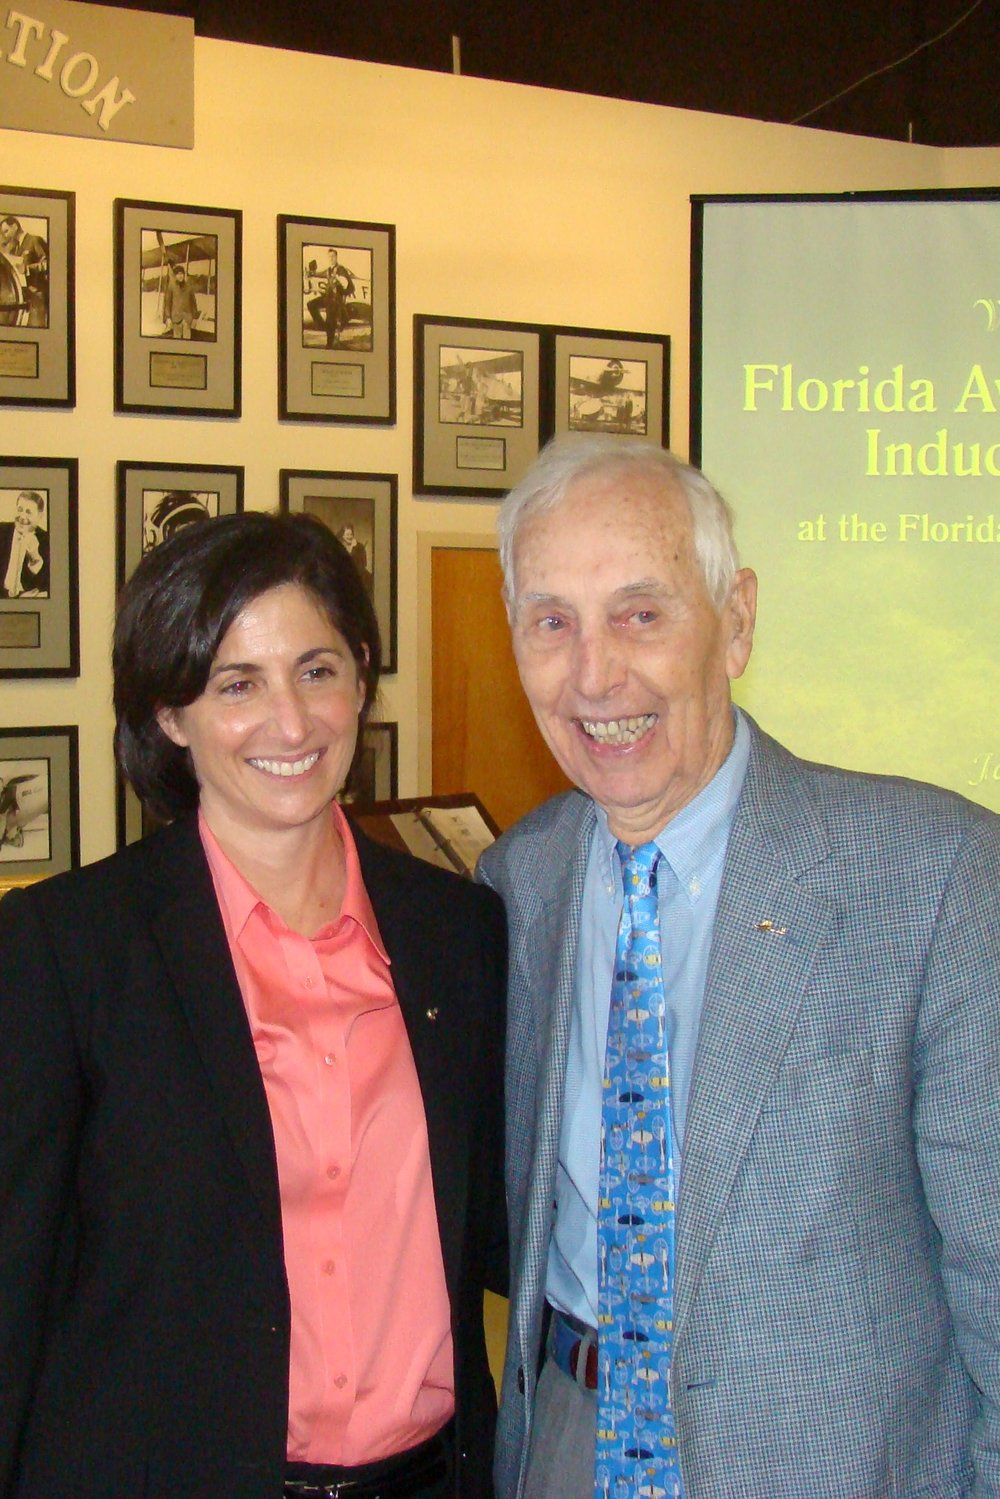 Nicloe Stott and Bill Krusen, Inductees in FAHOF, 28 Jan '12.JPG